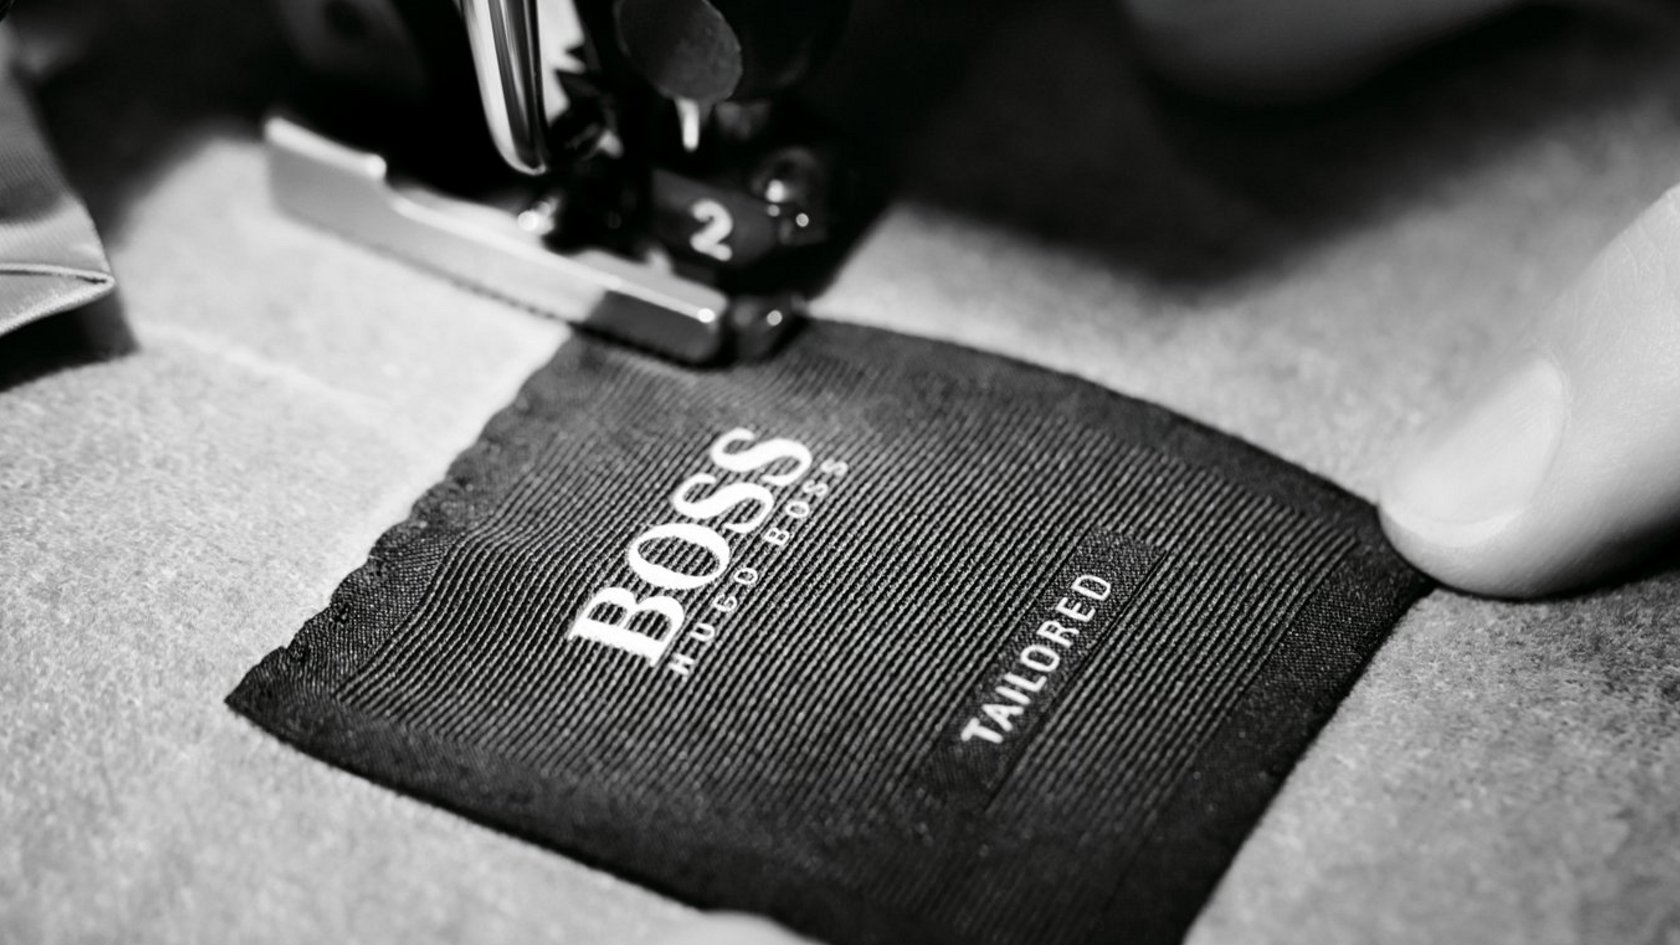 7ecdee339 Tailoring process of the BOSS Tailored suit: Stitching the BOSS label ...